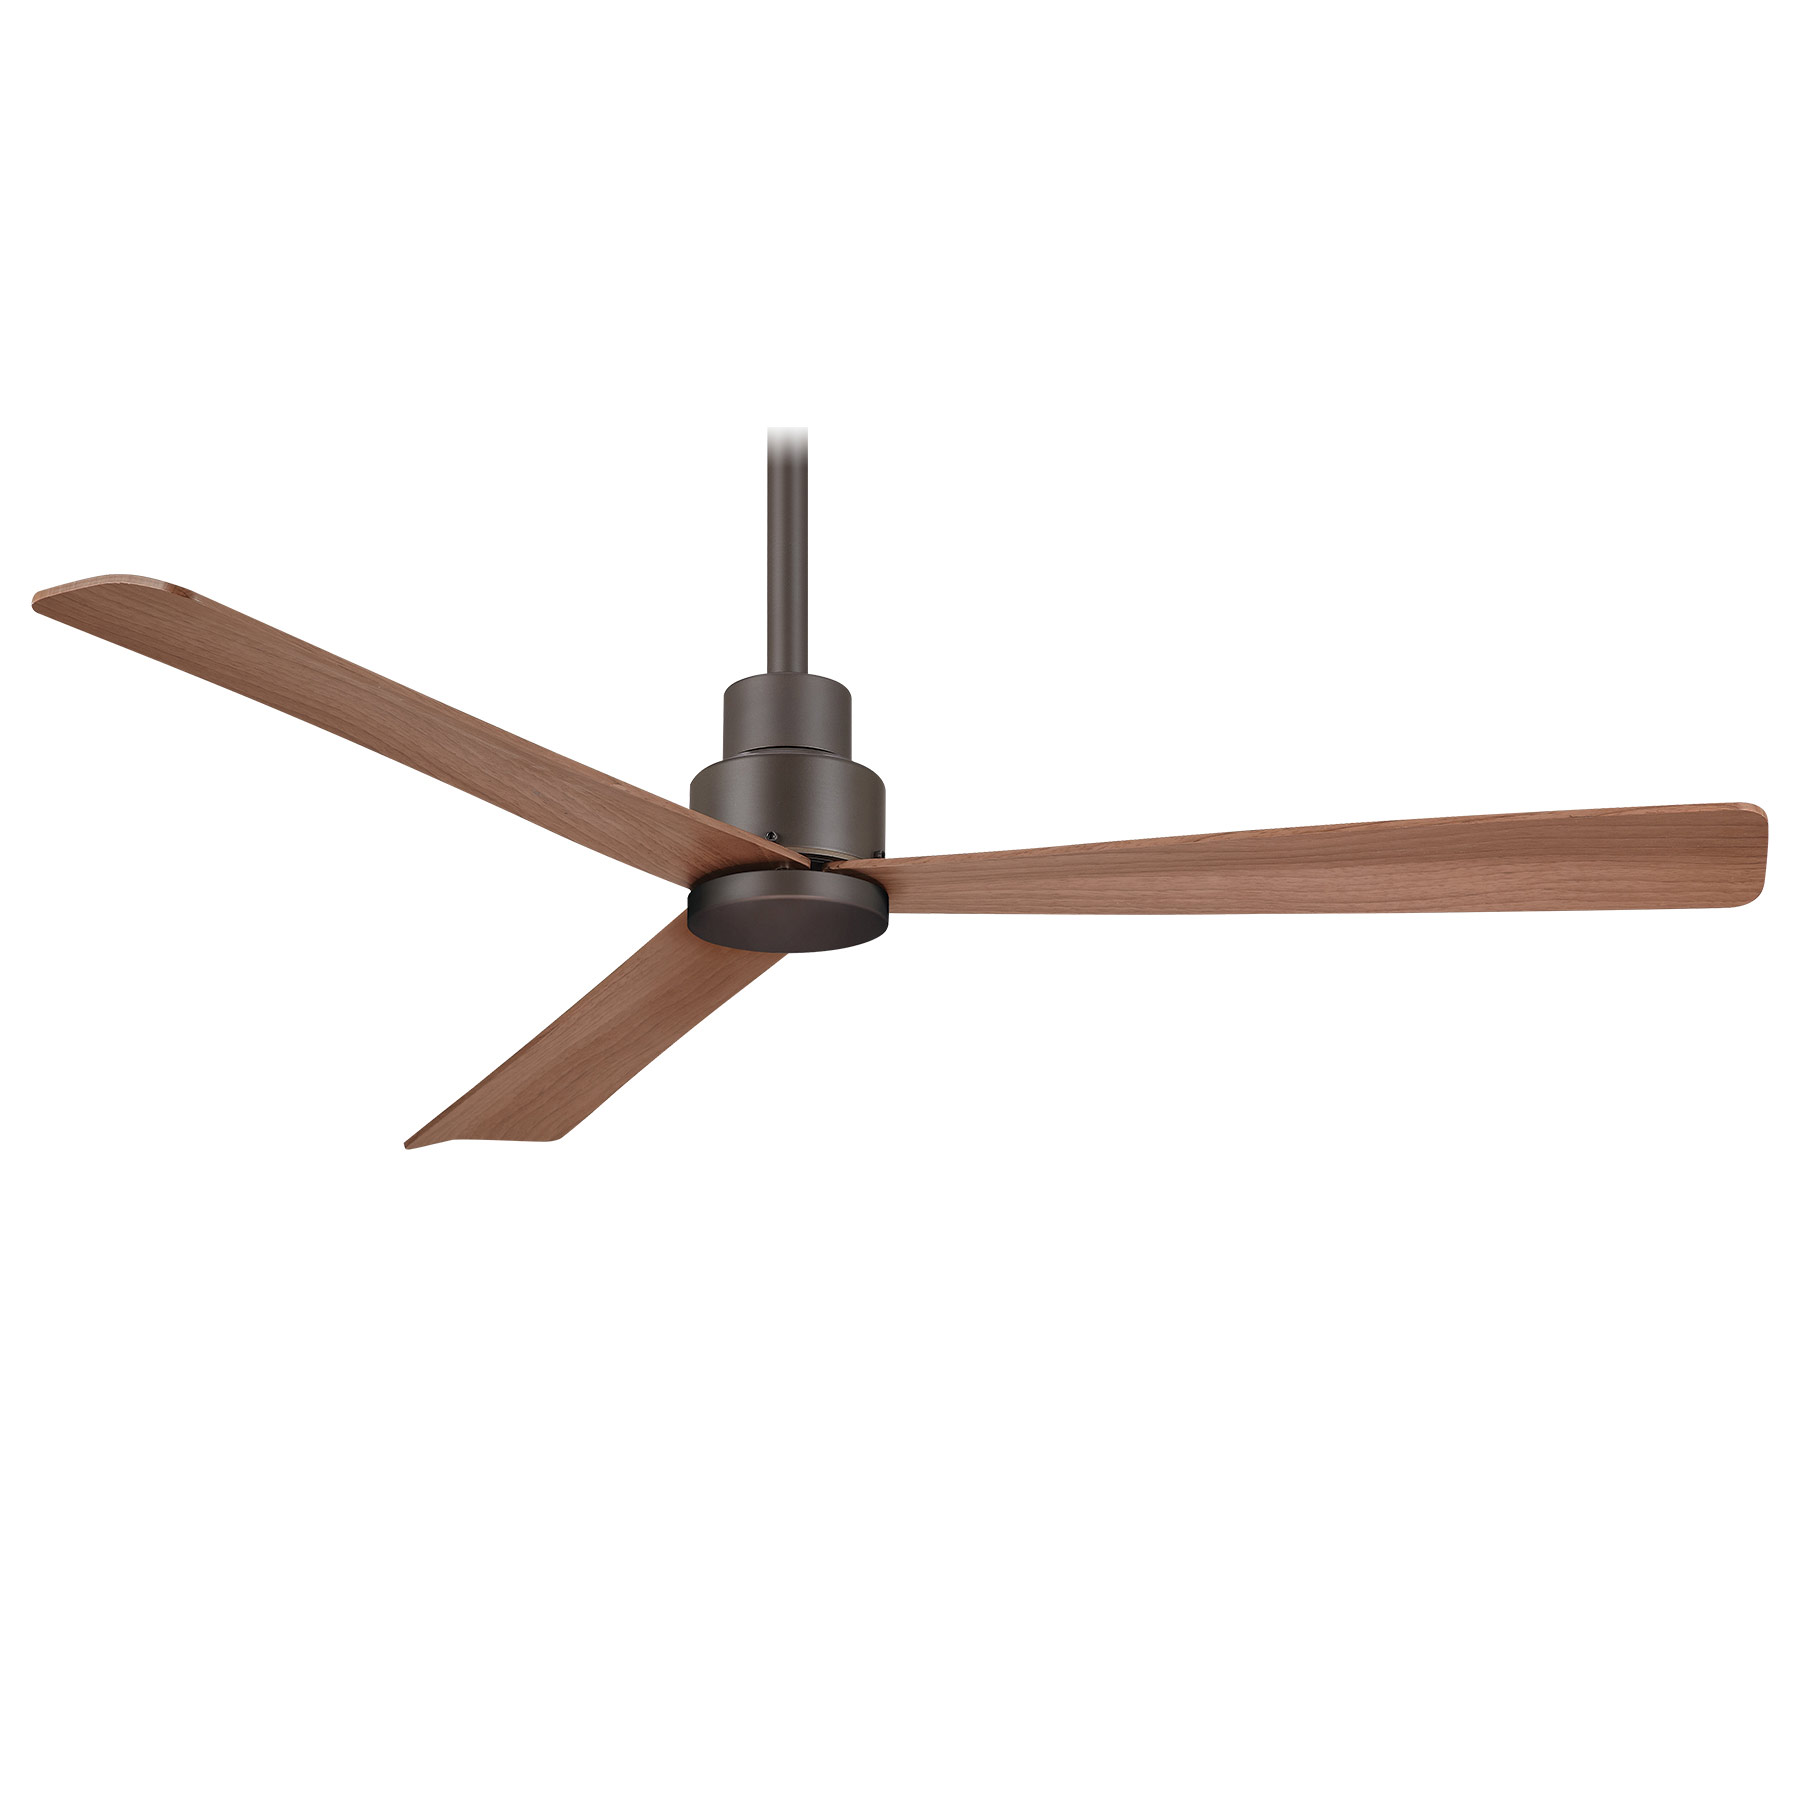 Simple outdoor ceiling fan 52 inch by minka aire f787 orb simple outdoor ceiling fan 52 inch download image aloadofball Choice Image